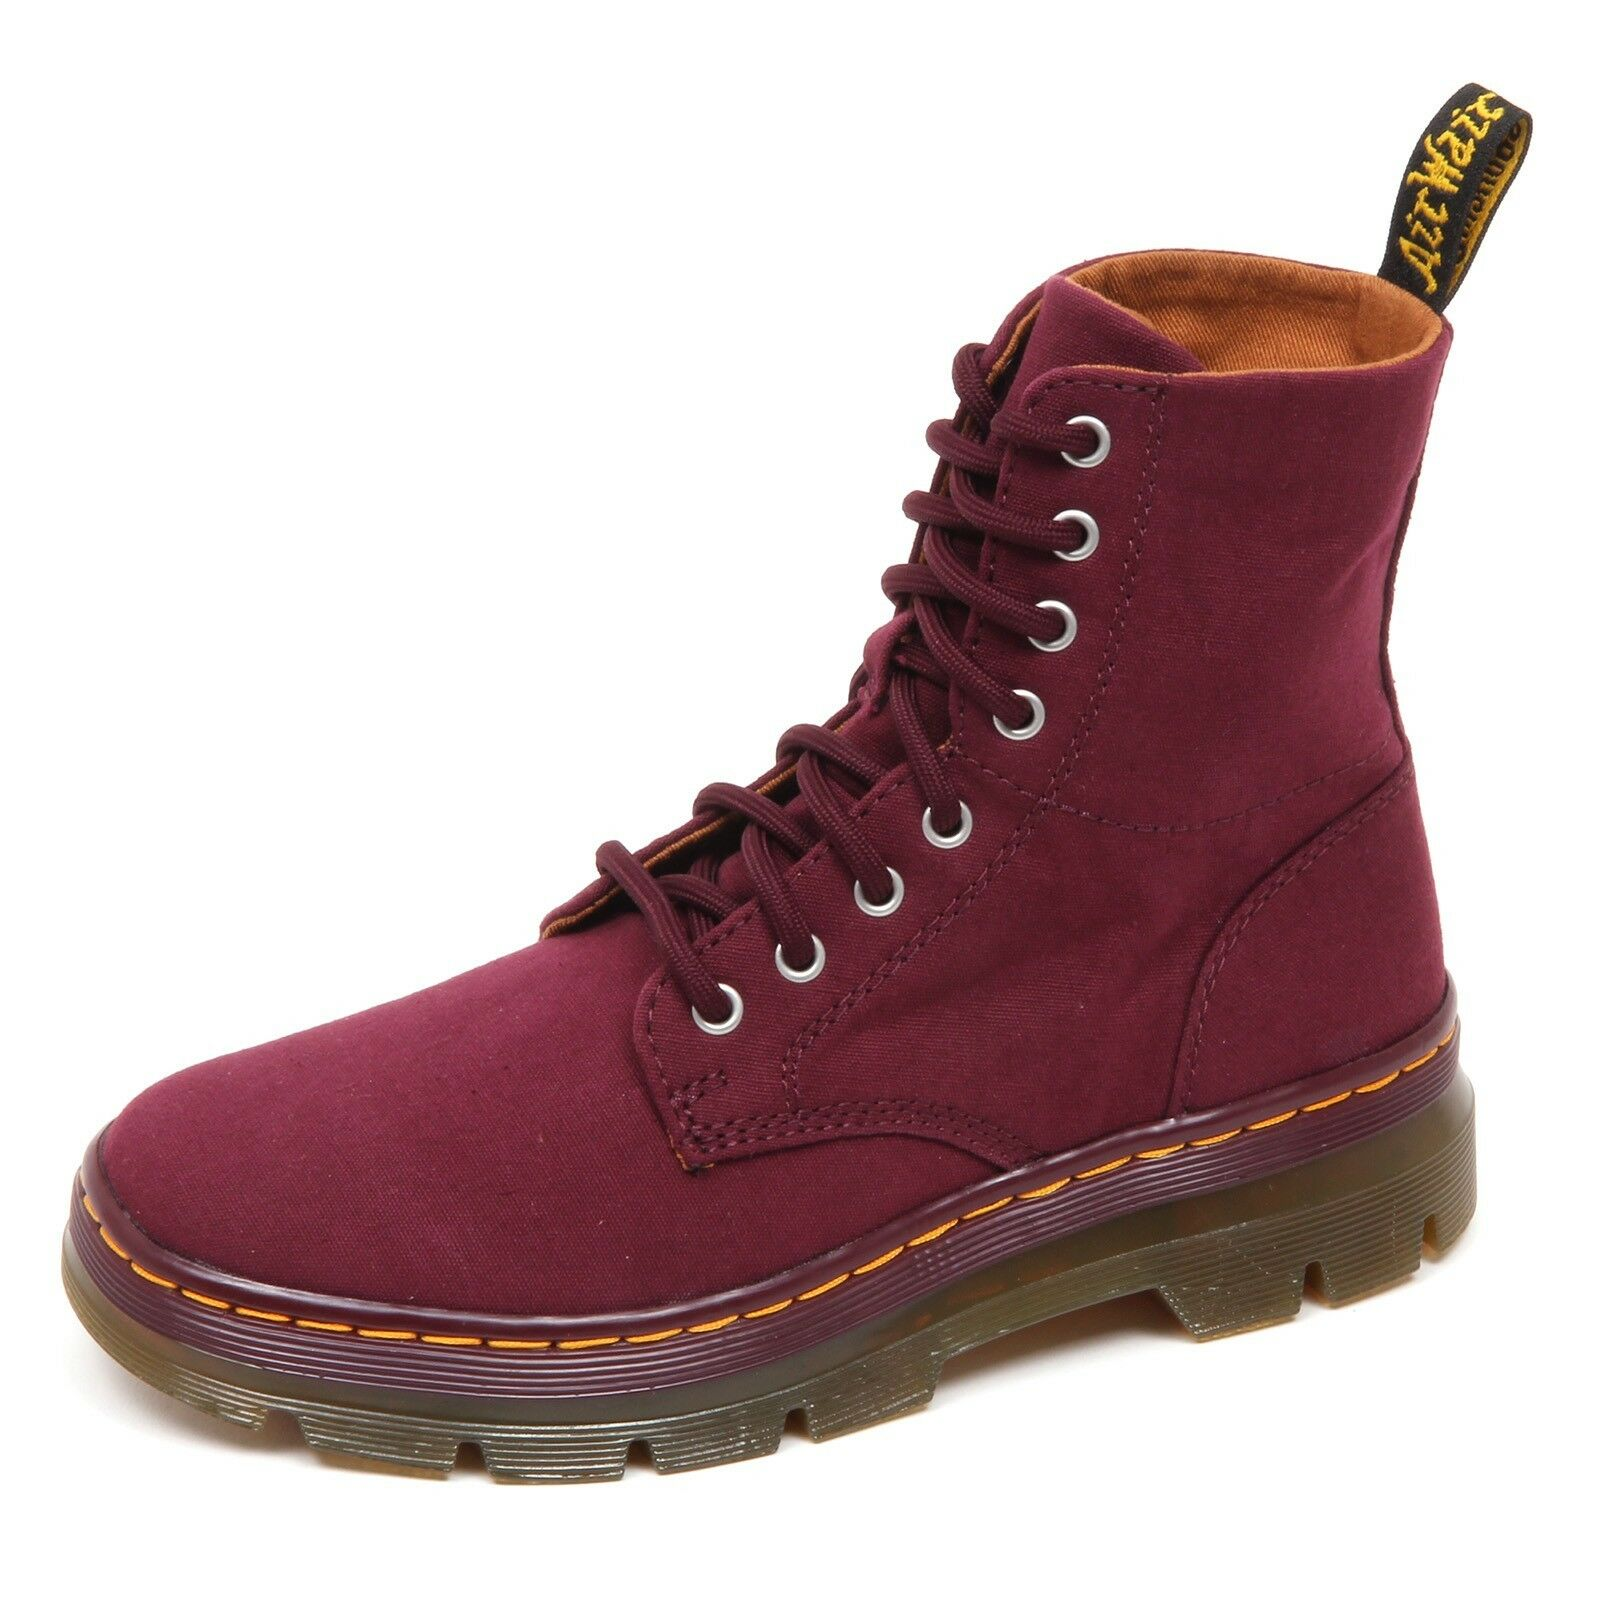 Grandes zapatos con descuento D7268 (SAMPLE NOT FOR SALE WITHOUT BOX) anfibio donna canvas DR. MARTENS boot